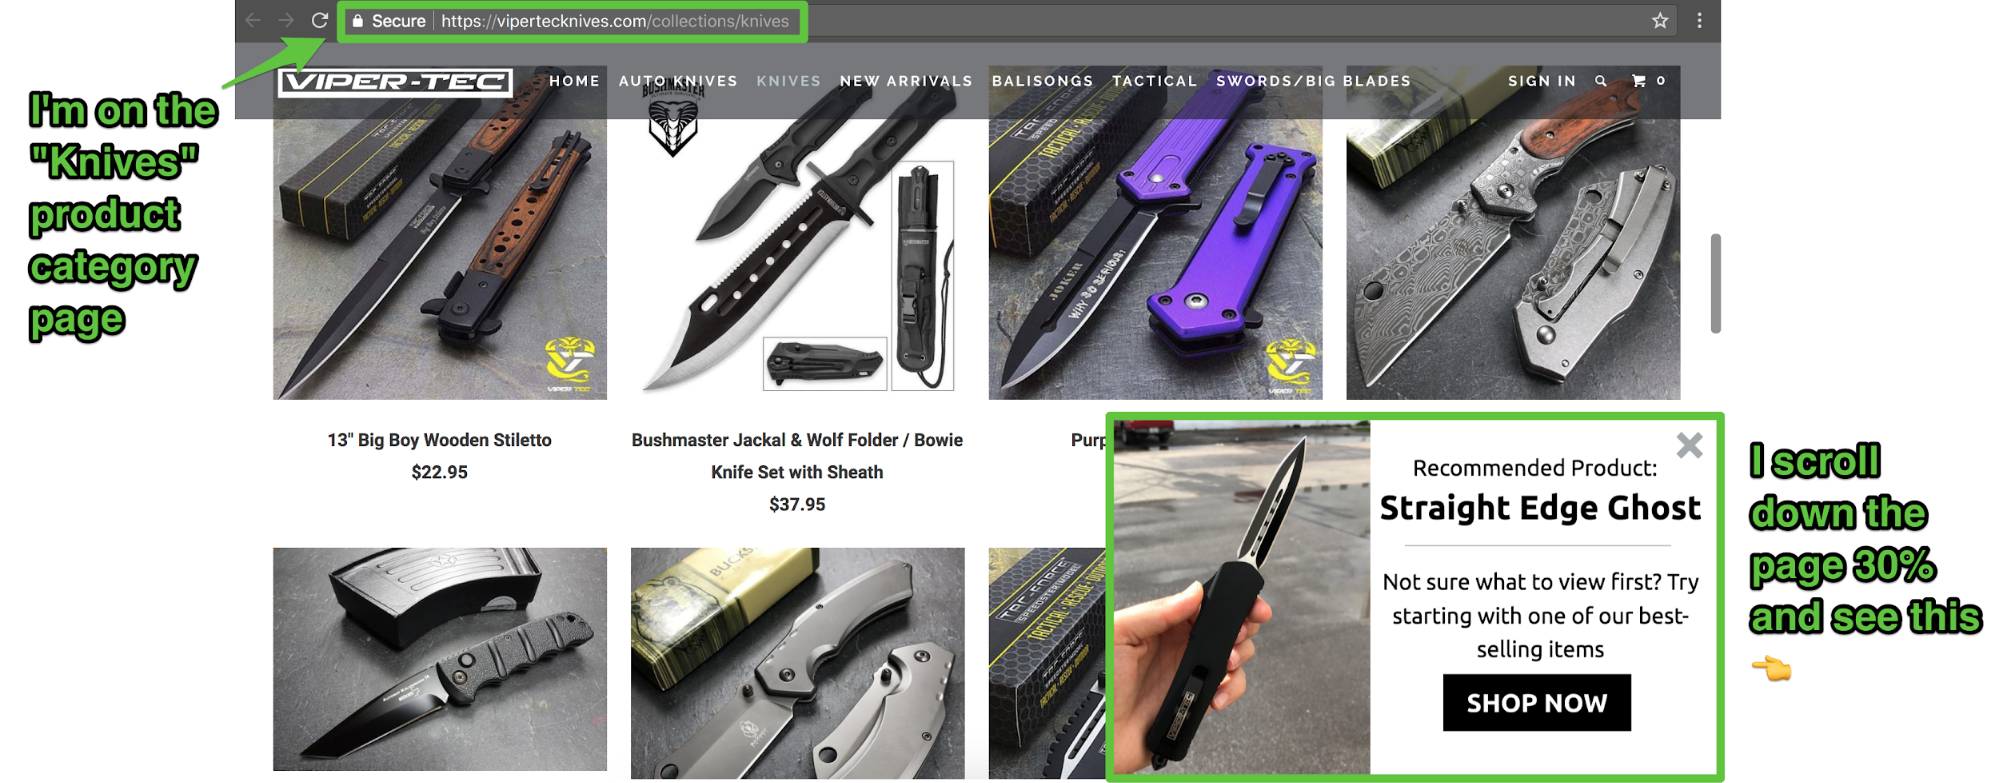 Screenshot showing different knives on sale